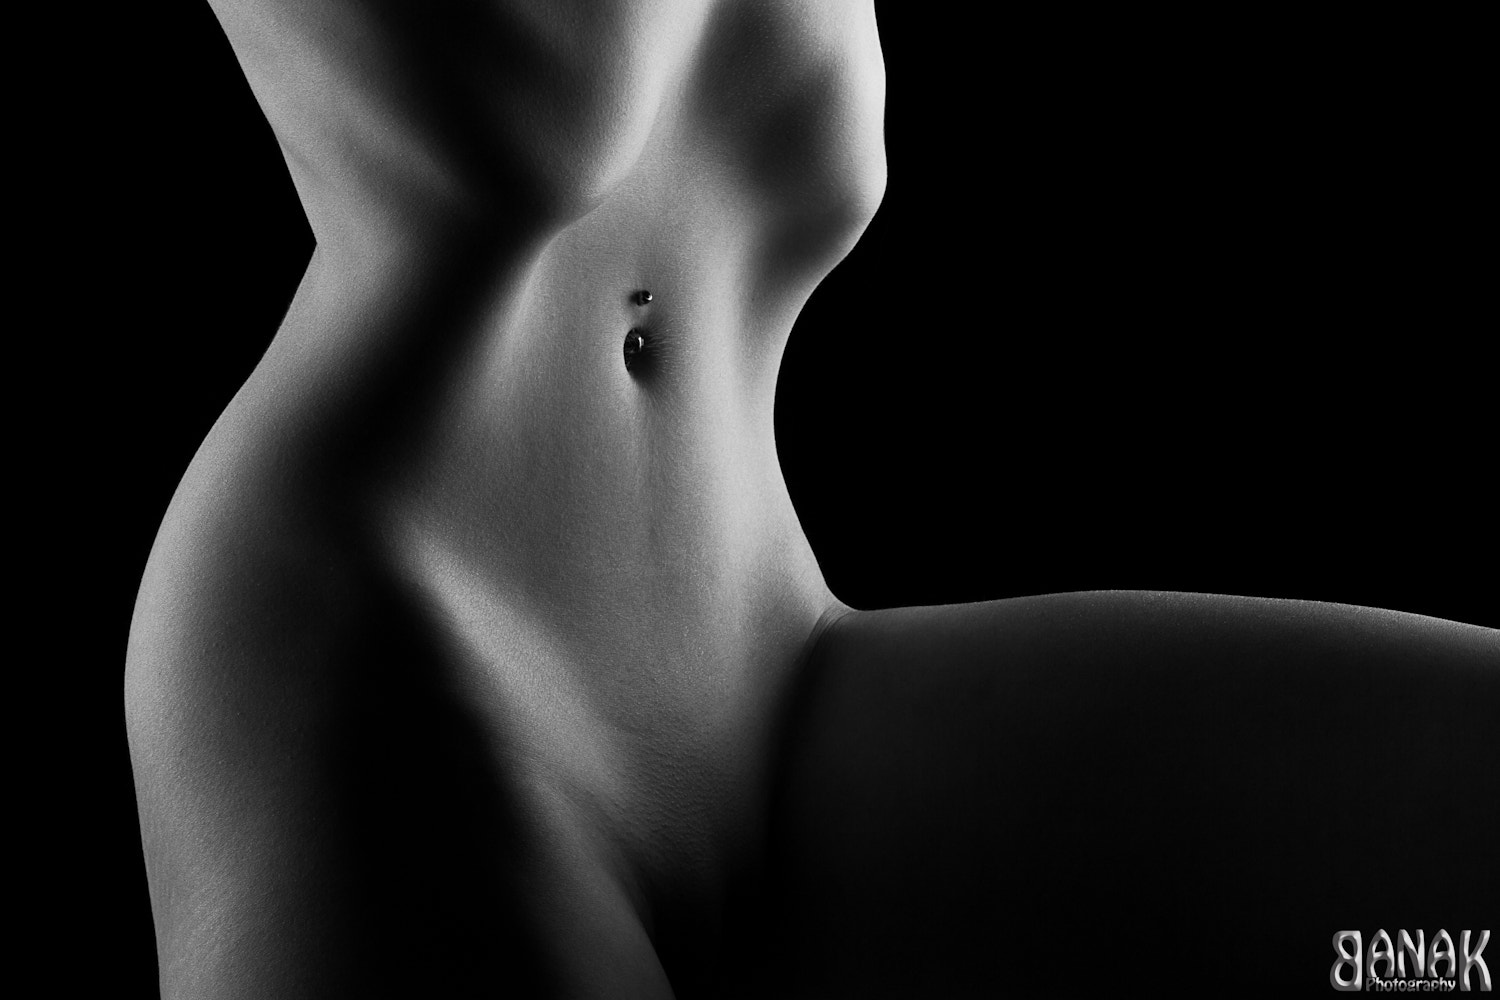 Photograph Abstract Human Form by Alan Banich on 500px